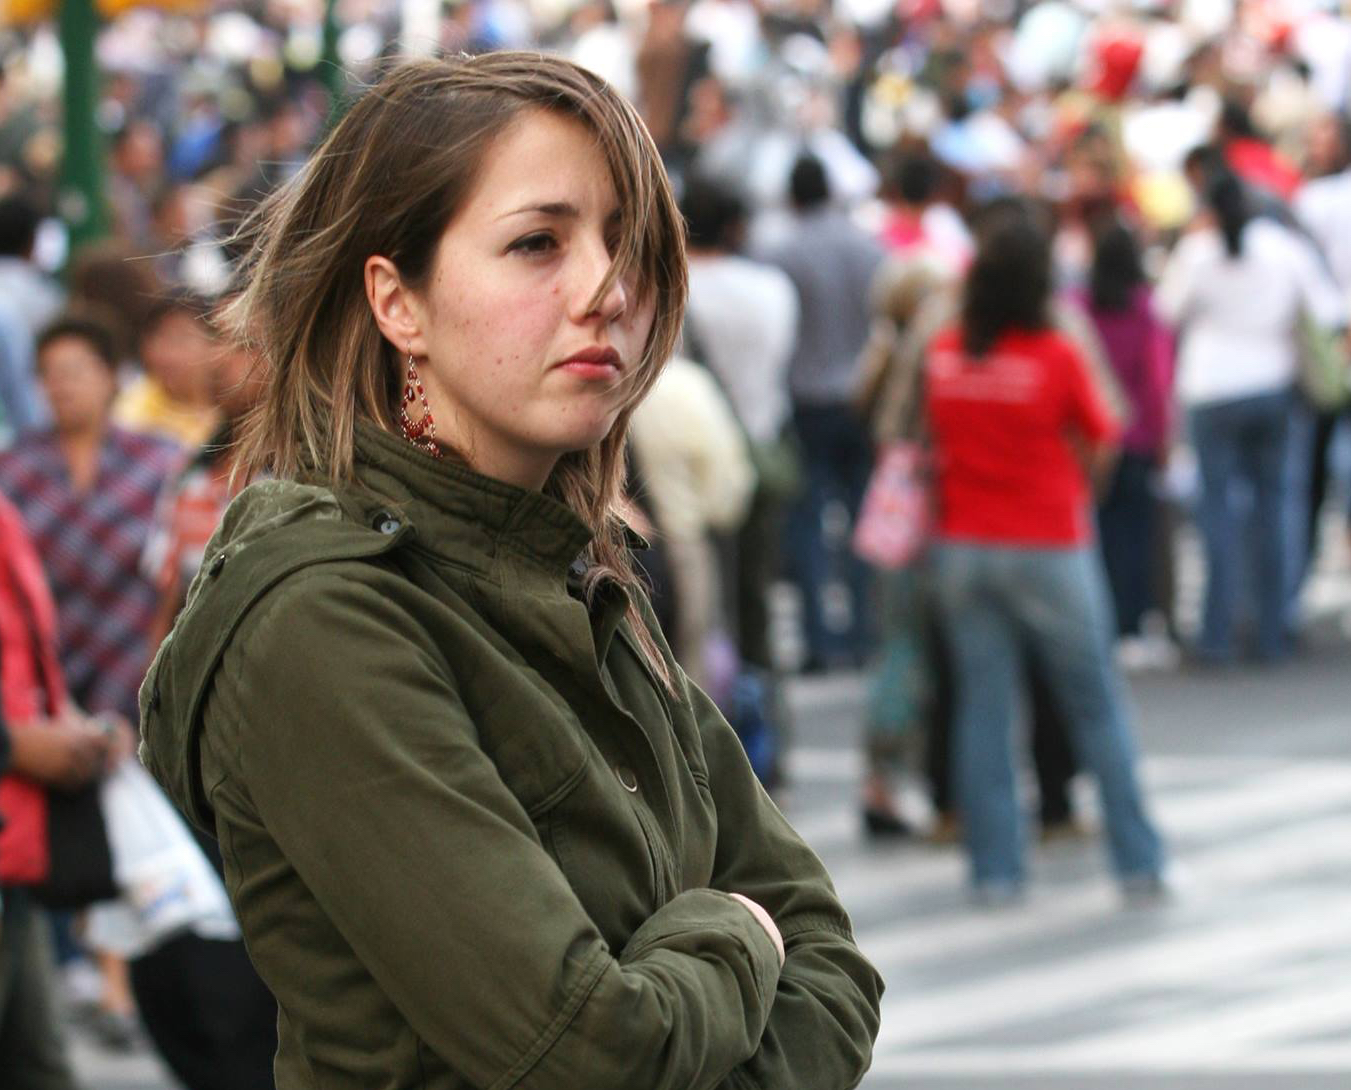 Ana Emilia Felker with brown hair covering half her face wearing an army green jacket with arms folded looking out into a crowd.